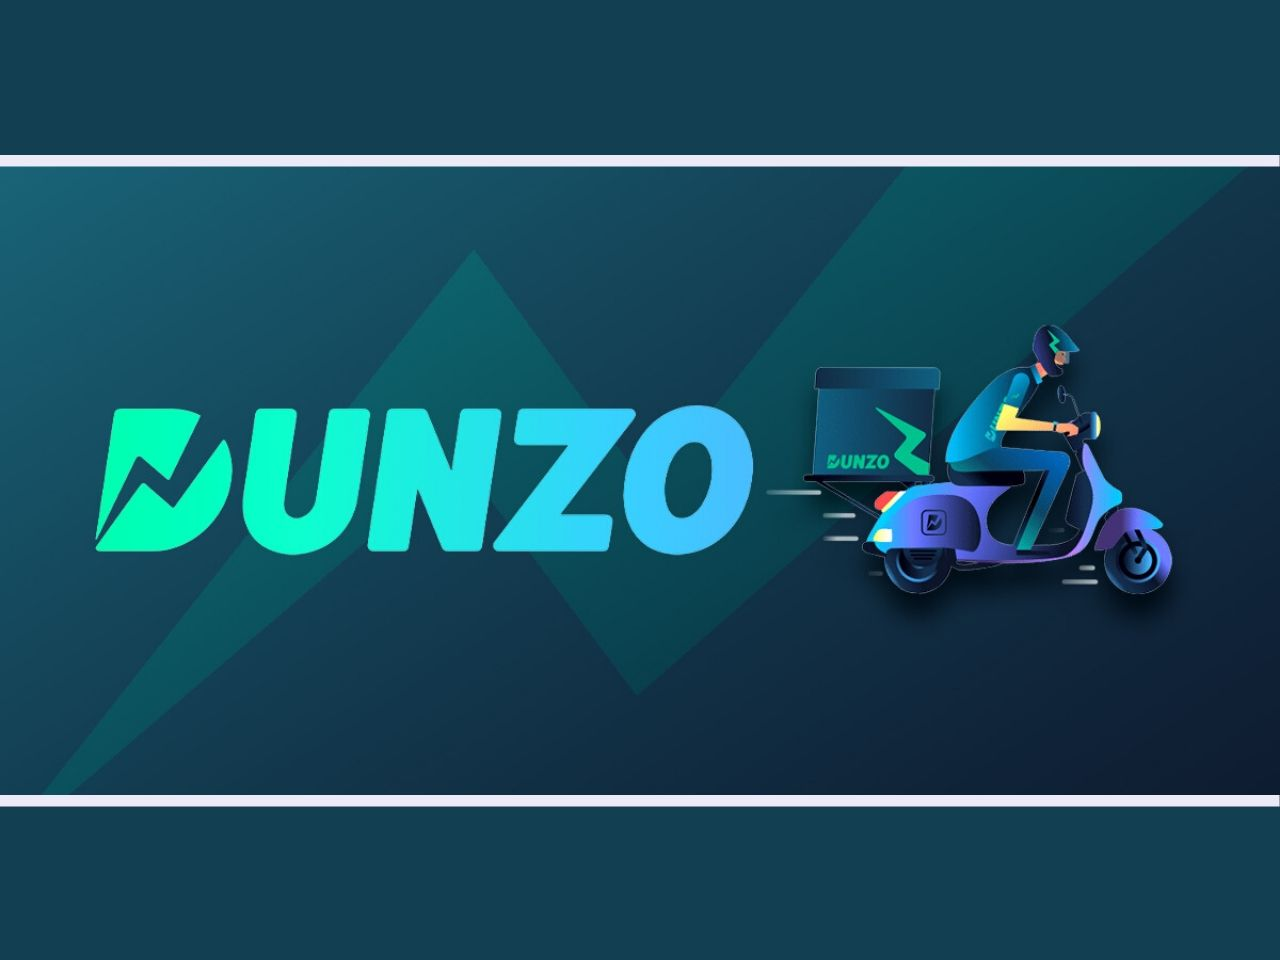 Dunzo suffers data breach exposing private data of its customers